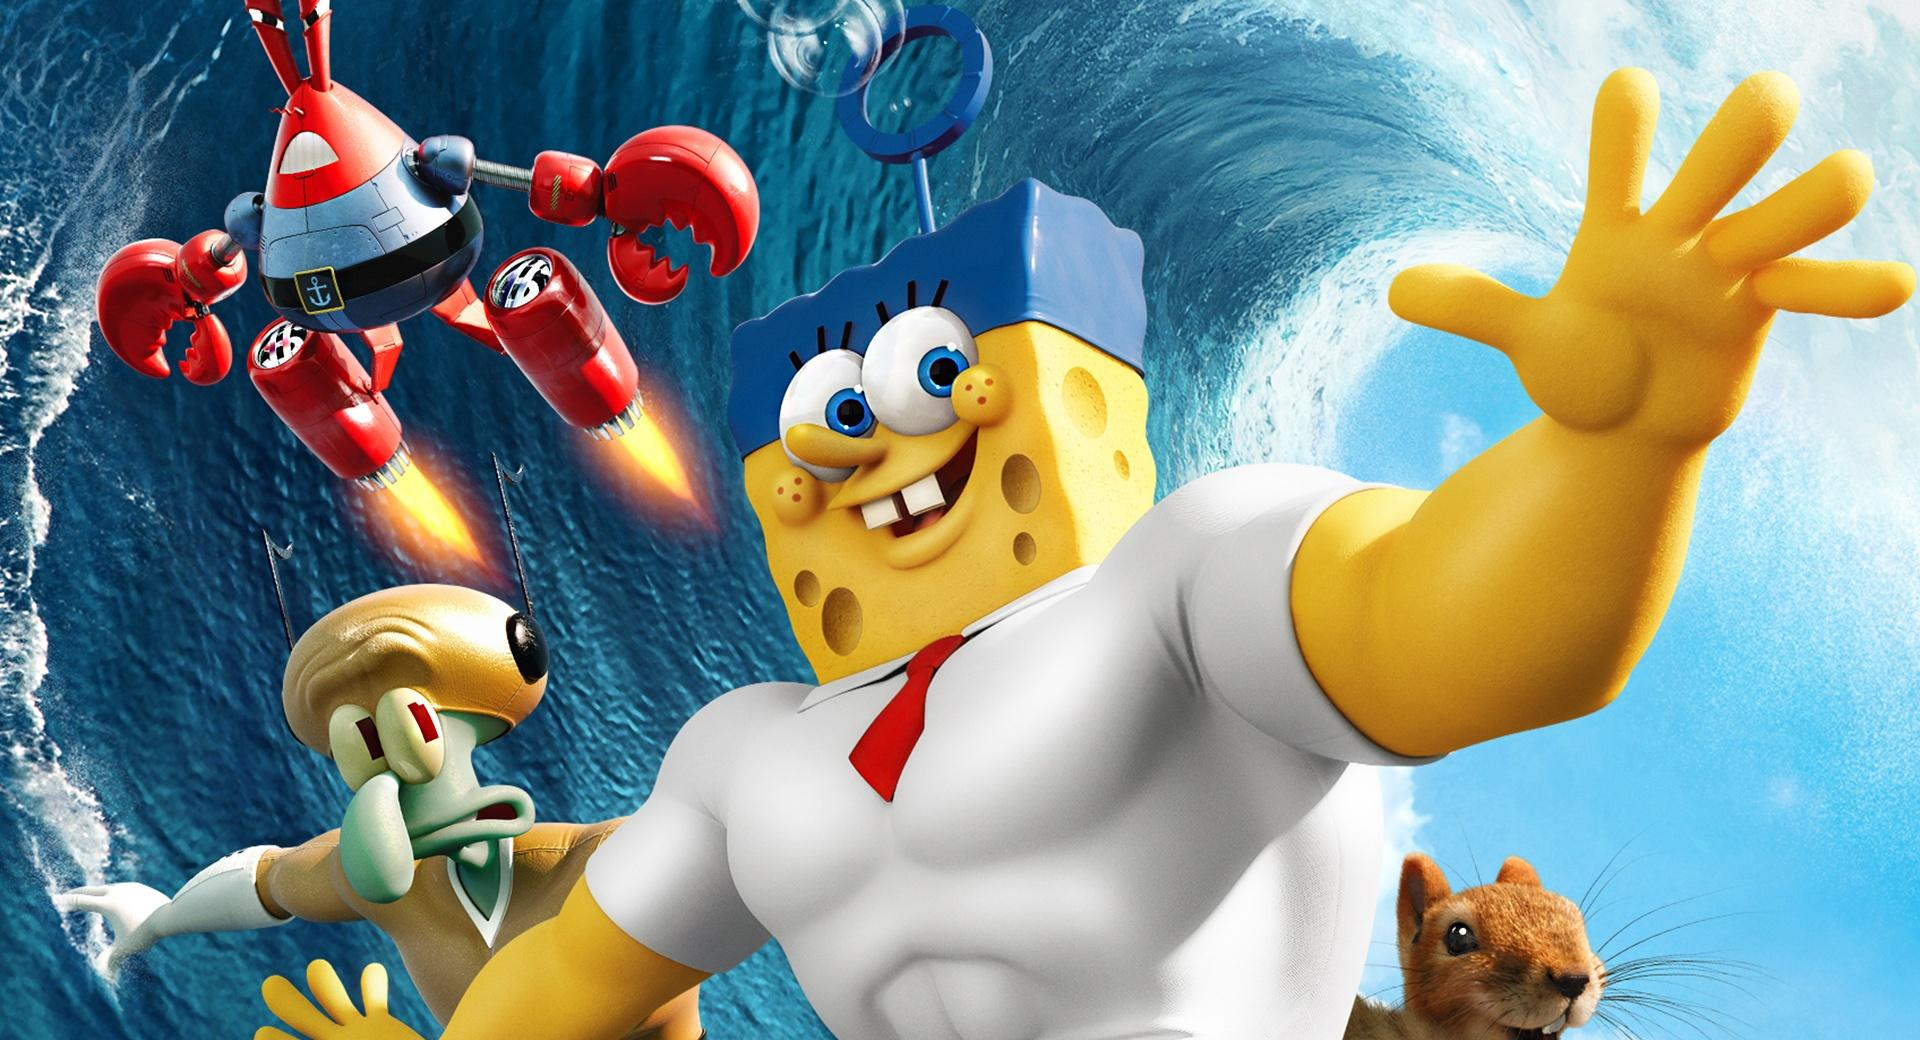 The SpongeBob Movie Sponge Out of Water 2015 wallpapers HD quality